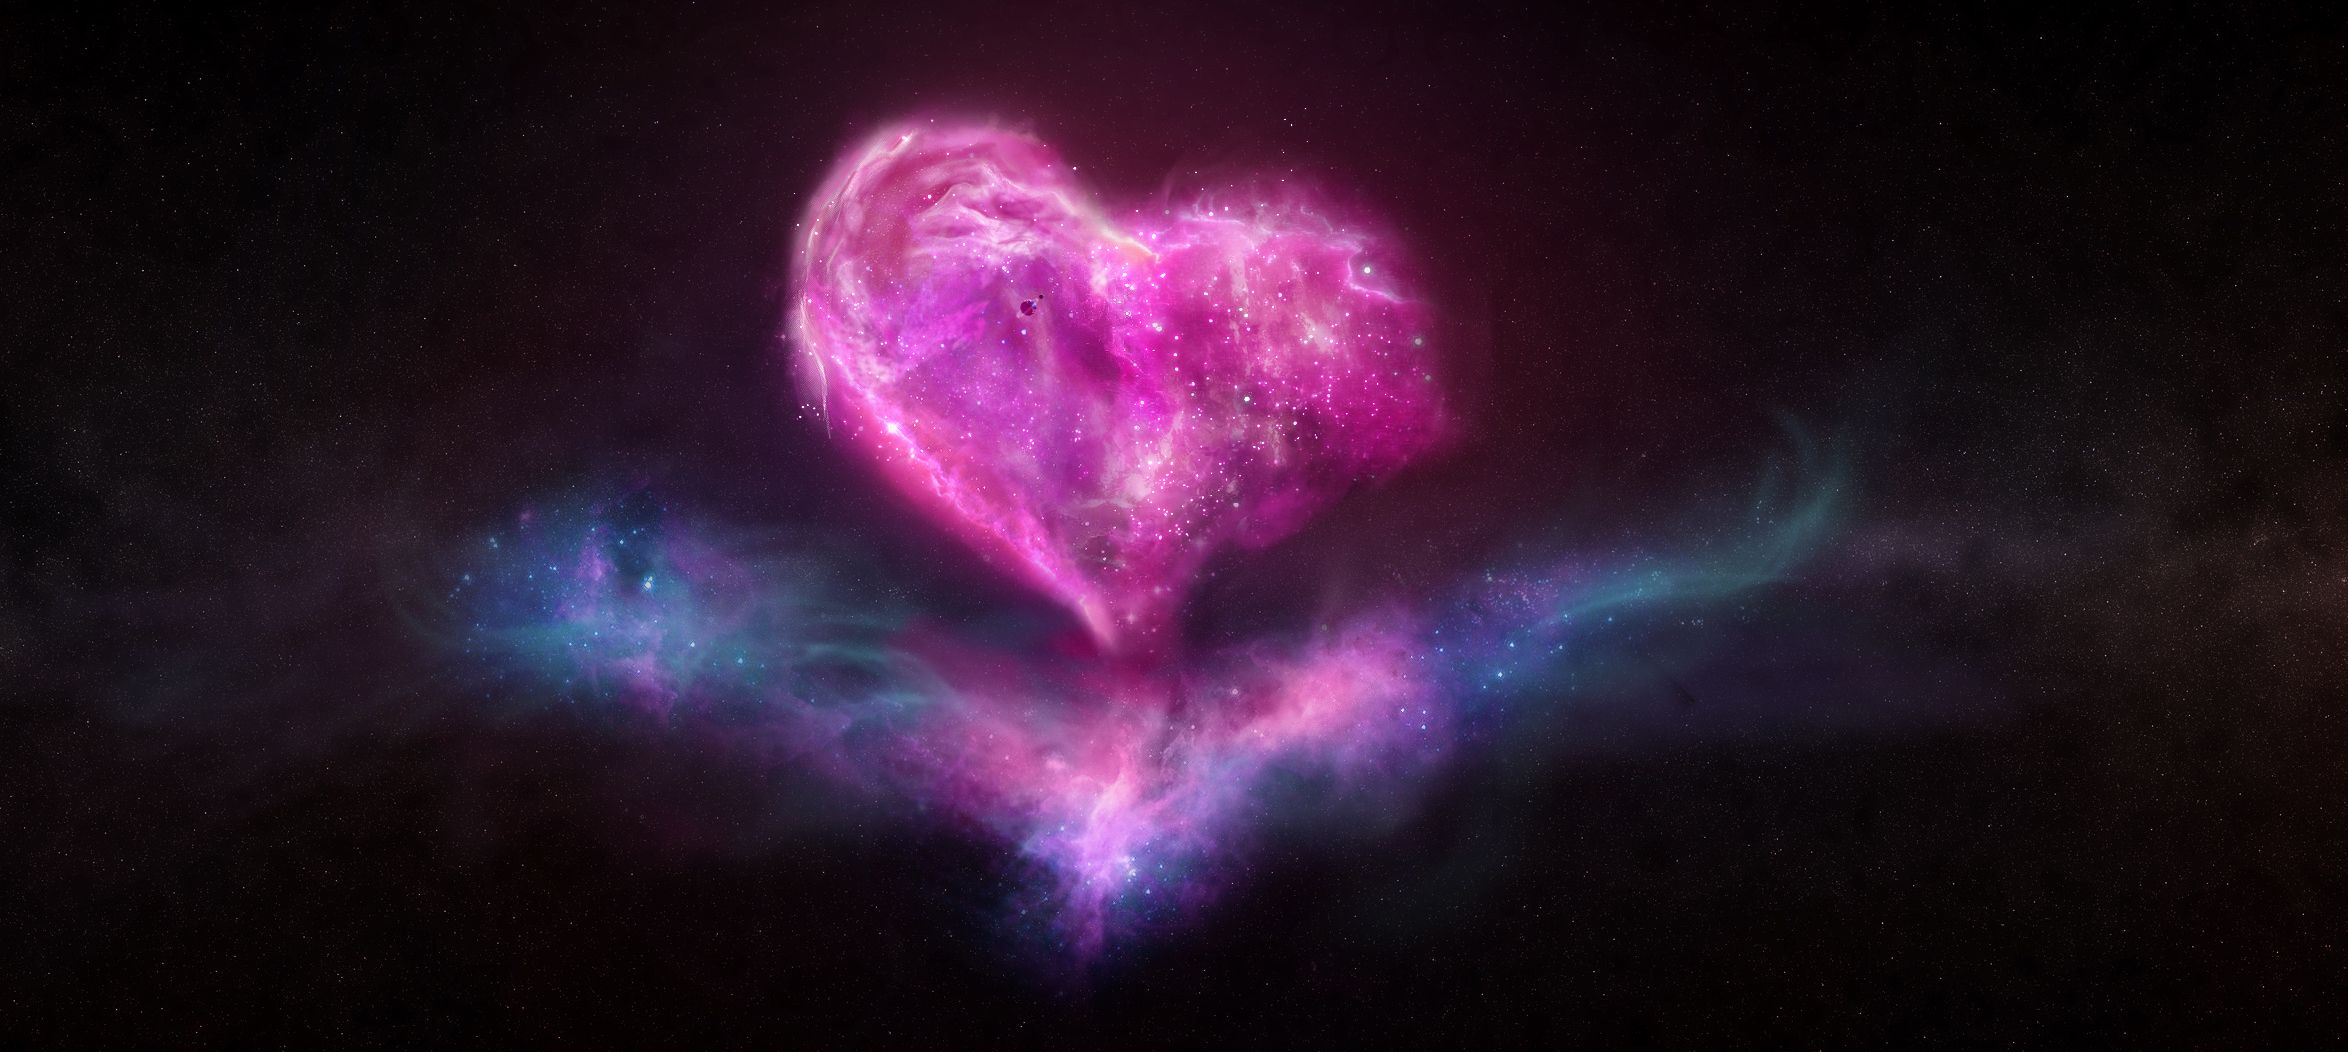 Love Wallpaper For Galaxy E7 : galaxy-heart-space-love-desktop-2348x1052-wanted-wallpaper-1.jpg (JPEG Image, 2348x1052 pixels ...